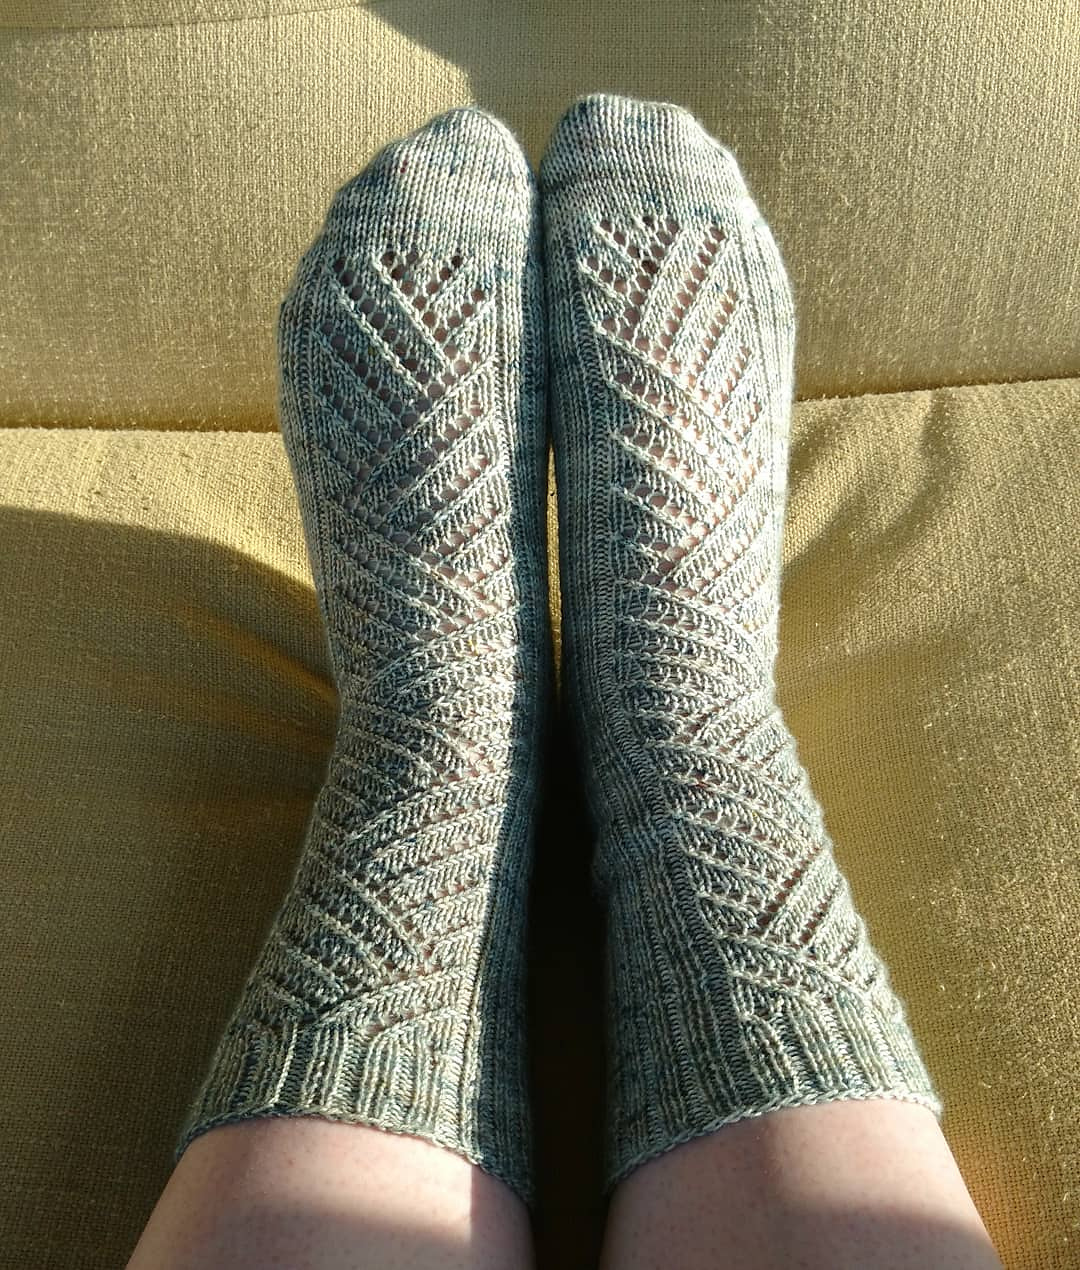 Winding Way Socks - Pattern by Tin Can Knits, Yarn is by Life in the Long Grass in the colour 'Beachgrass'